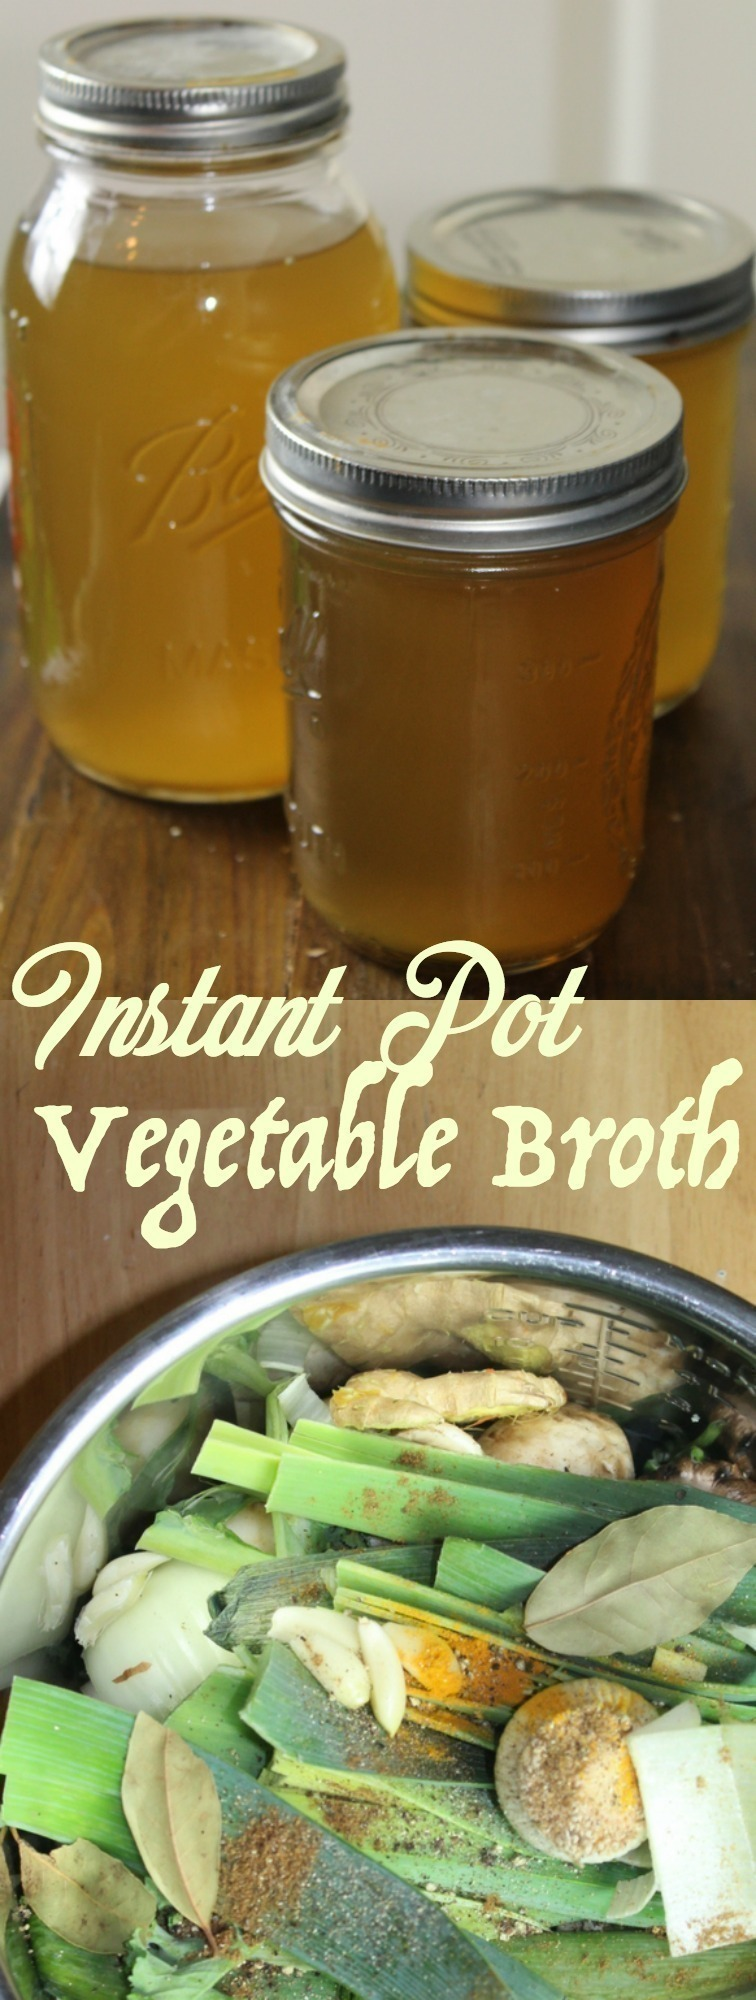 Combine all of your vegetable scraps in the Instant Pot along with a few seasonings to make a rich, homemade vegetable broth from scratch!